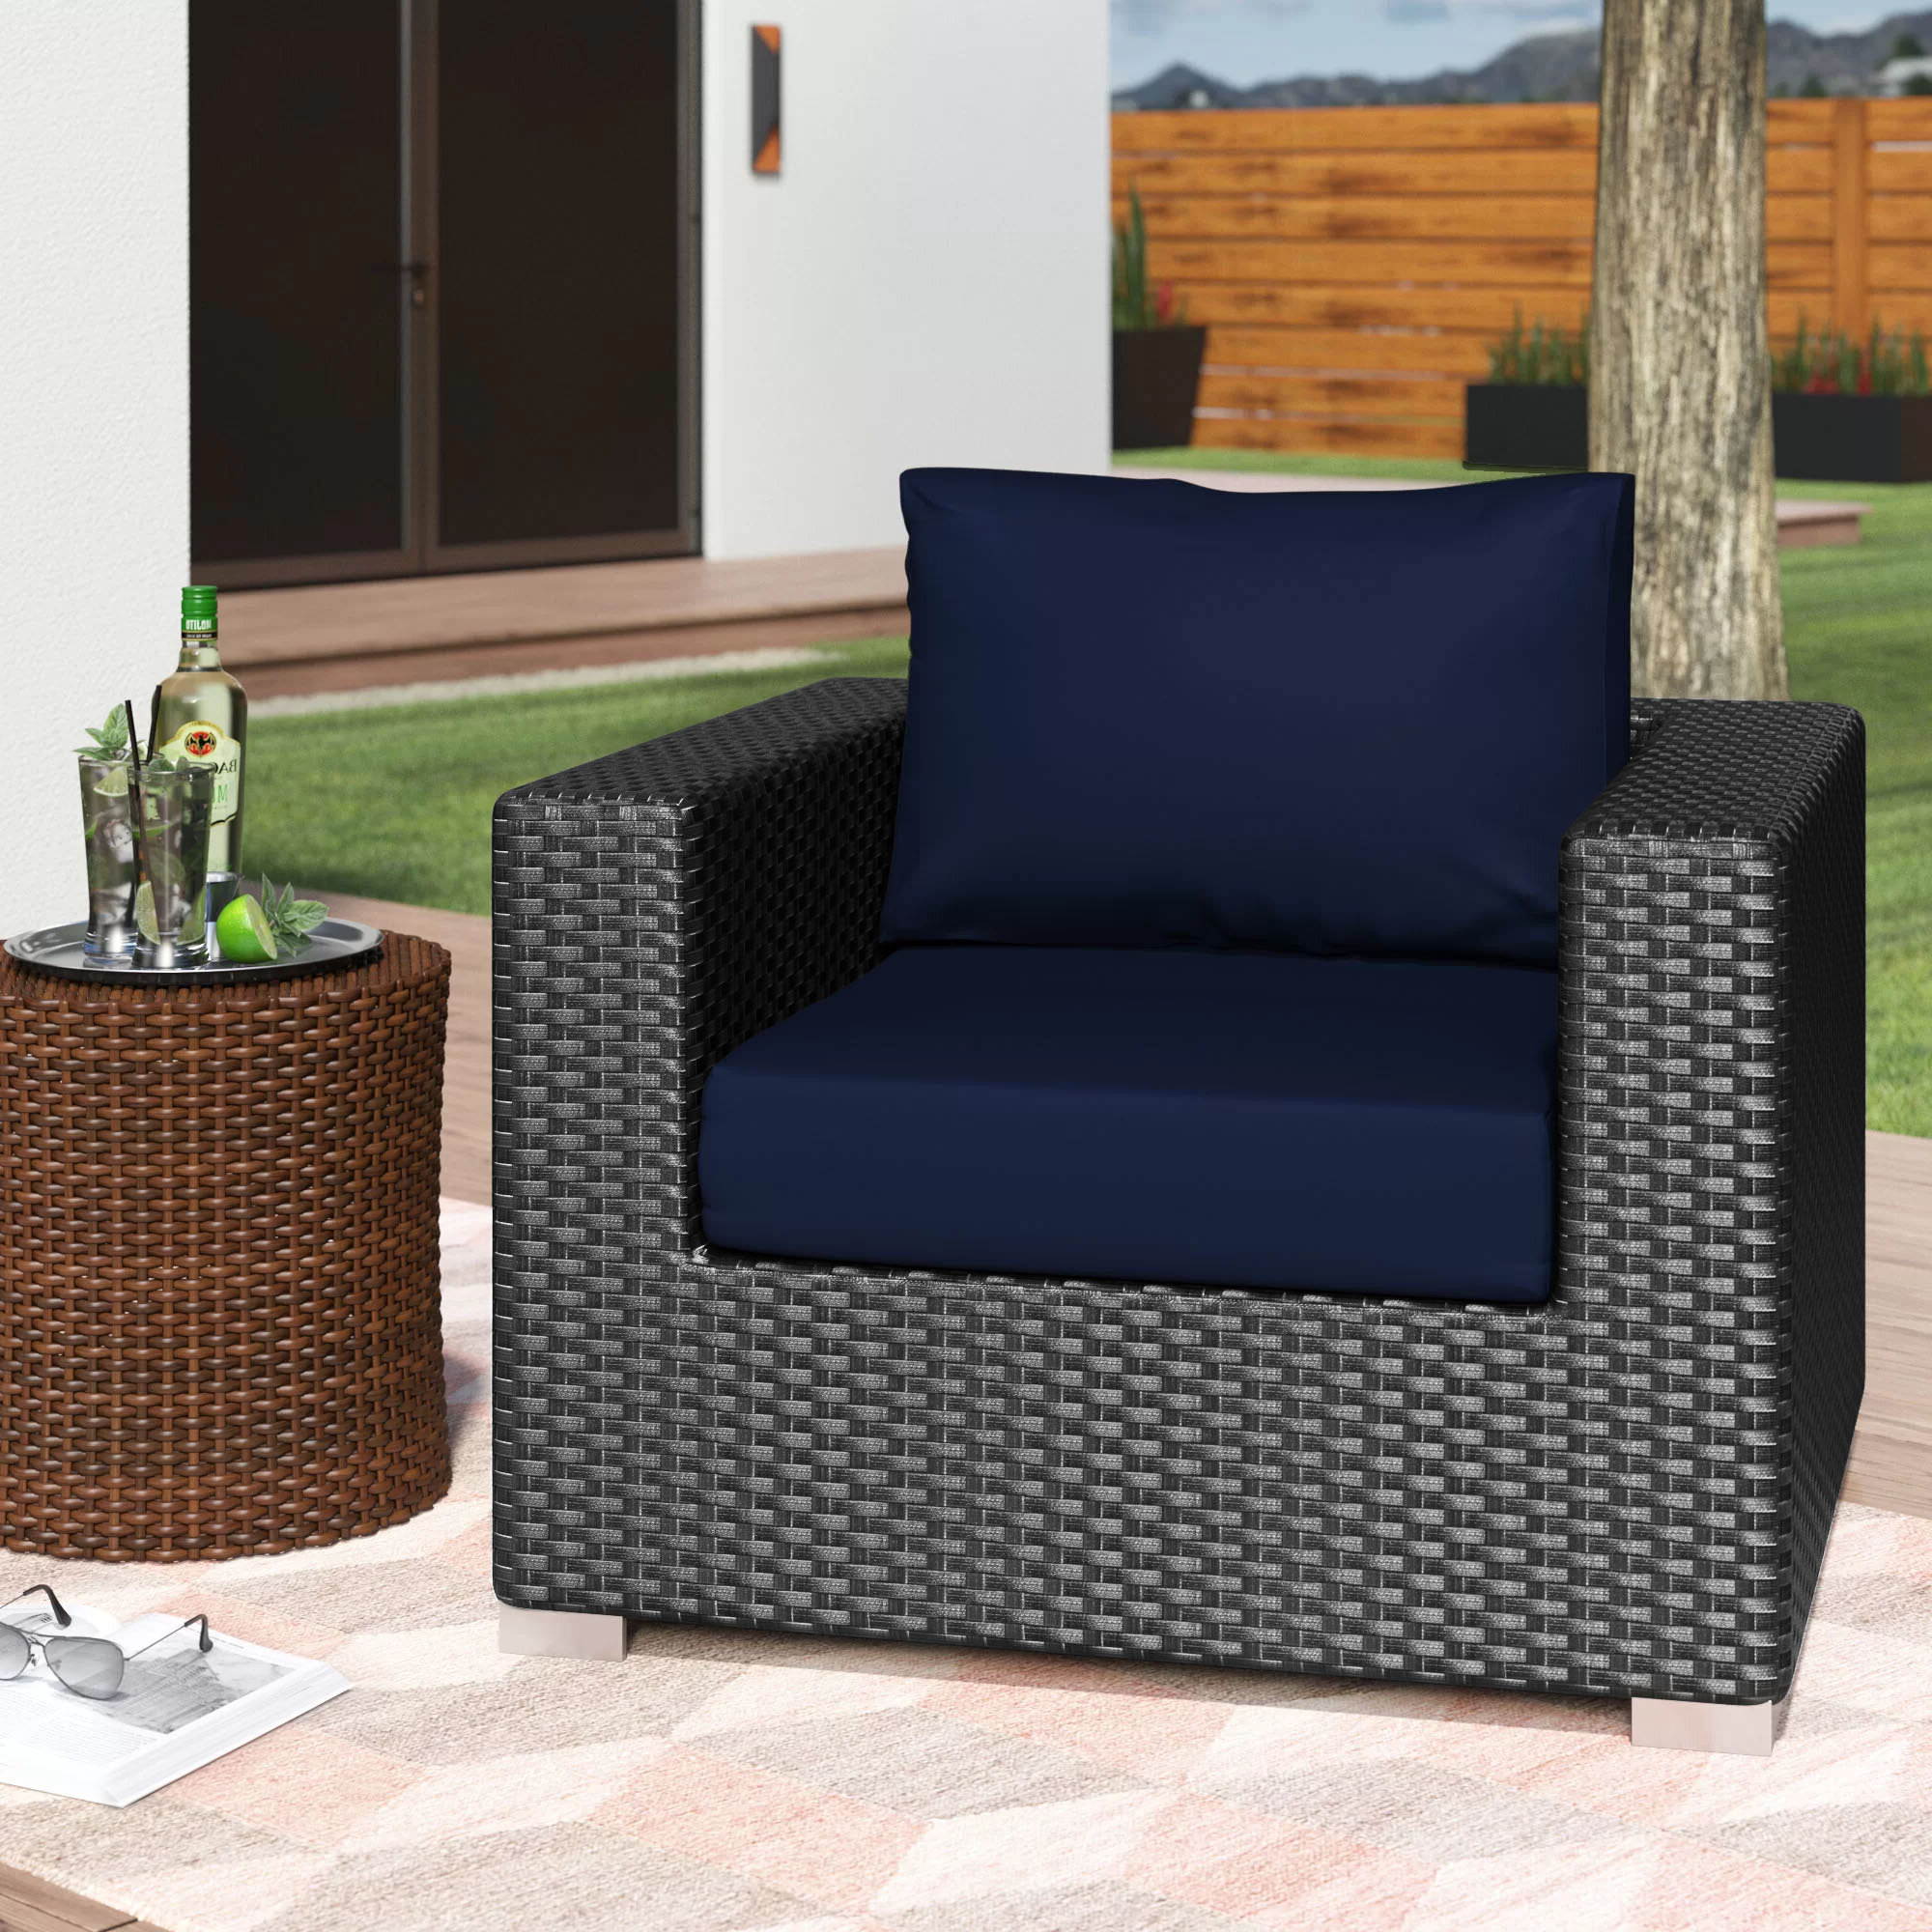 Tripp Sofas With Cushions For Most Up To Date Tripp Outdoor Patio Chair With Cushions (View 17 of 25)